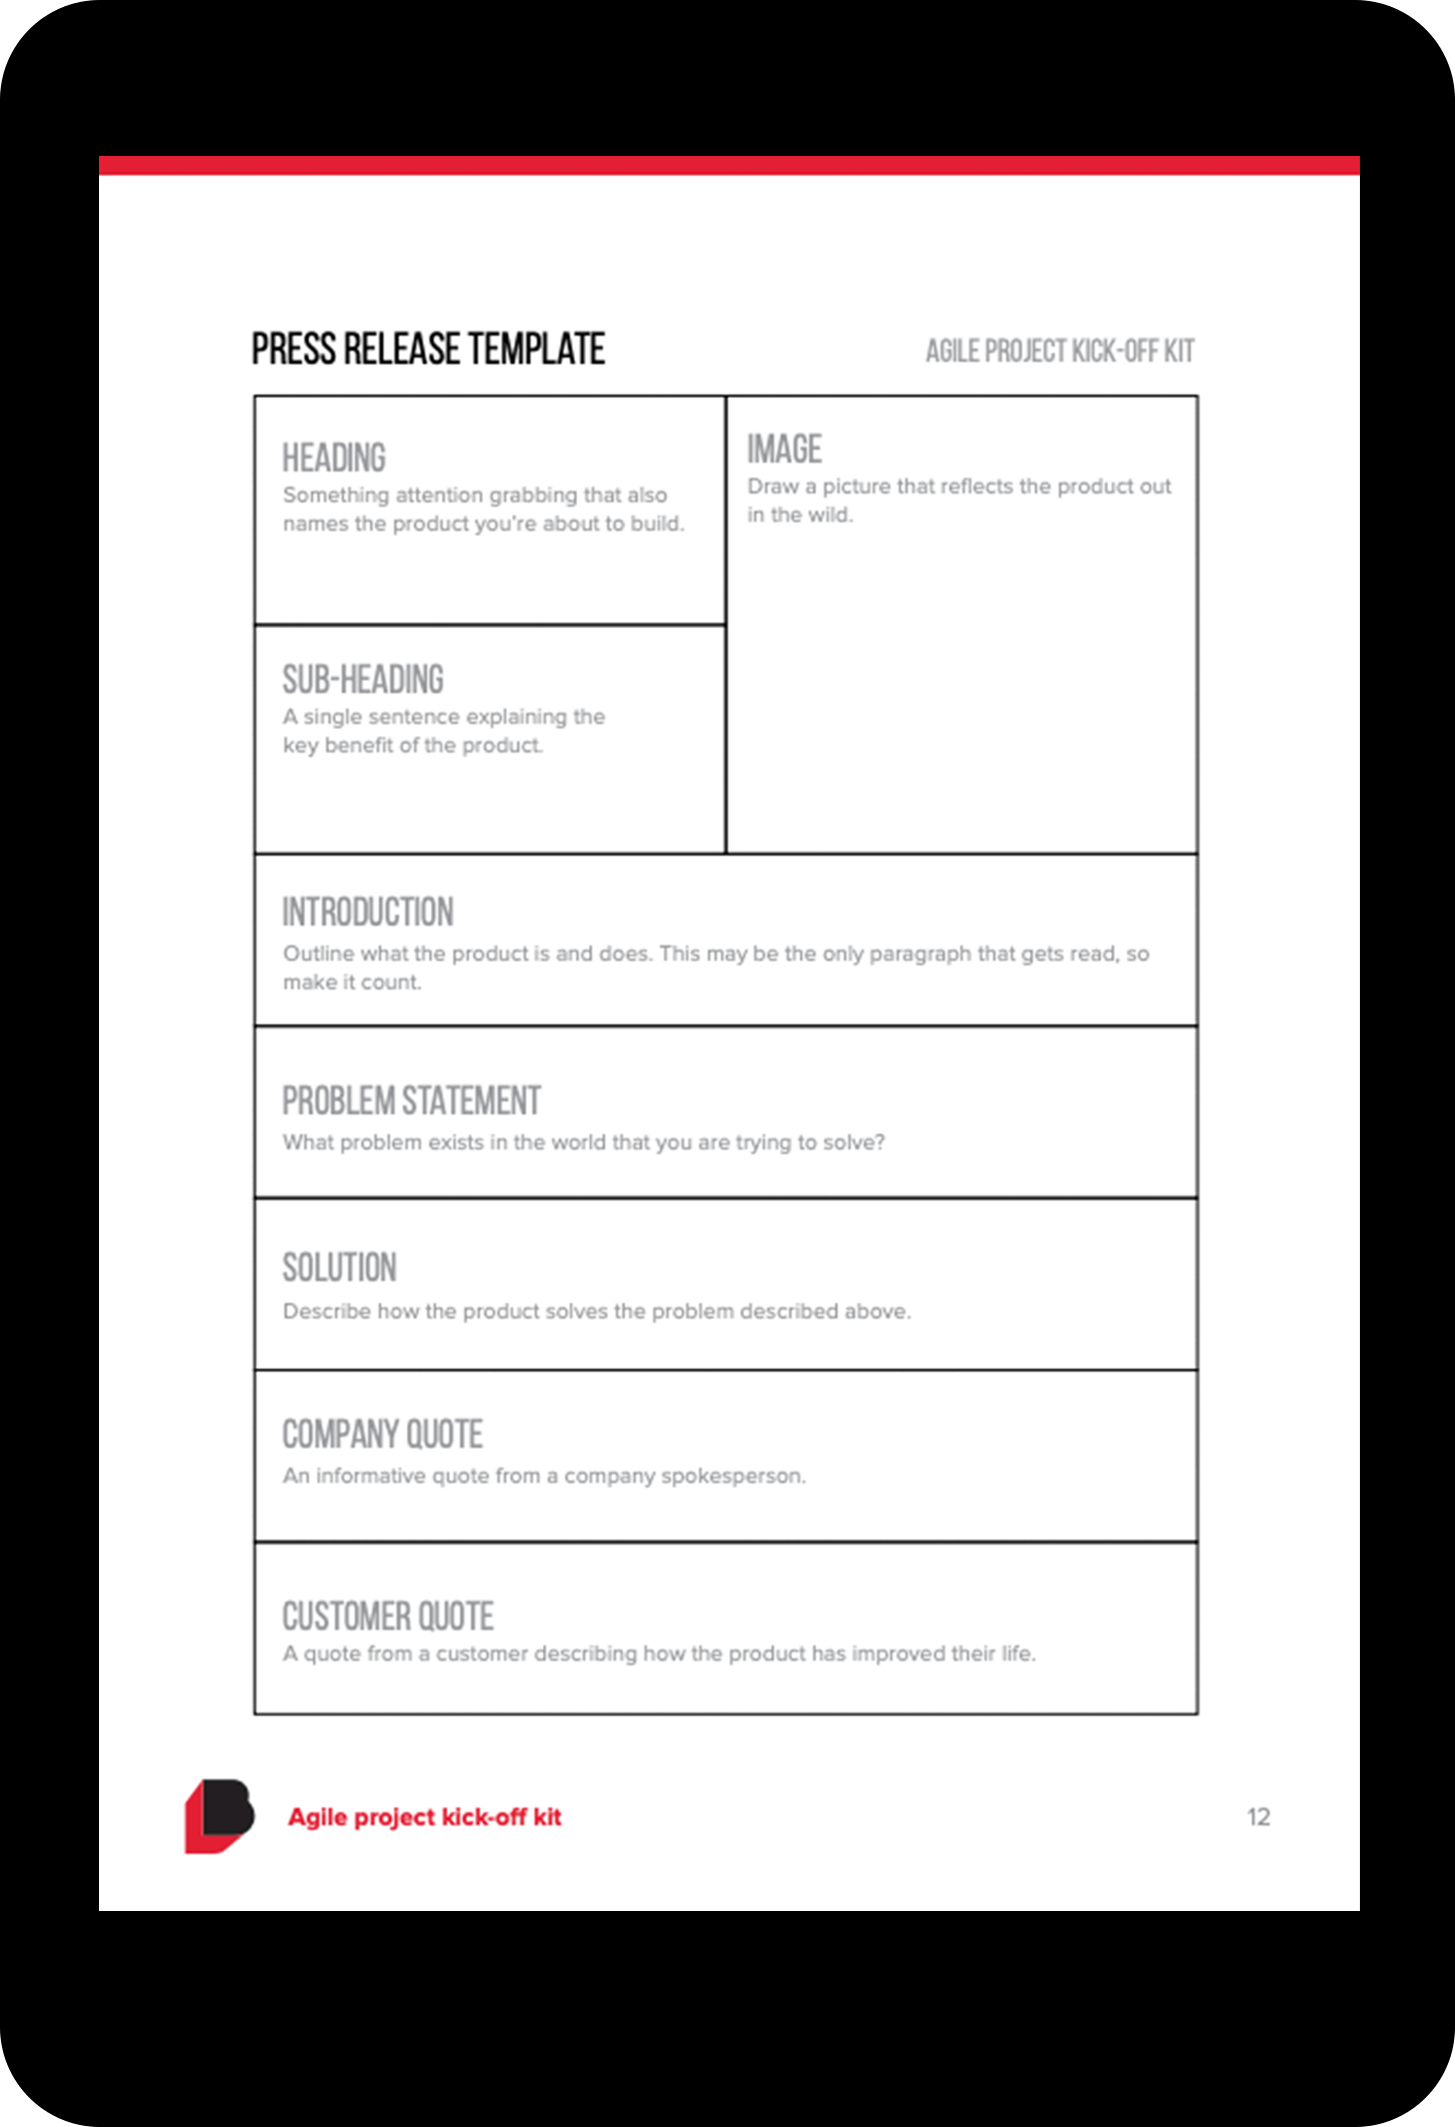 Sample pages from the Agile project kick-off kit shown on a tablet. Click the dots to view each sample page.